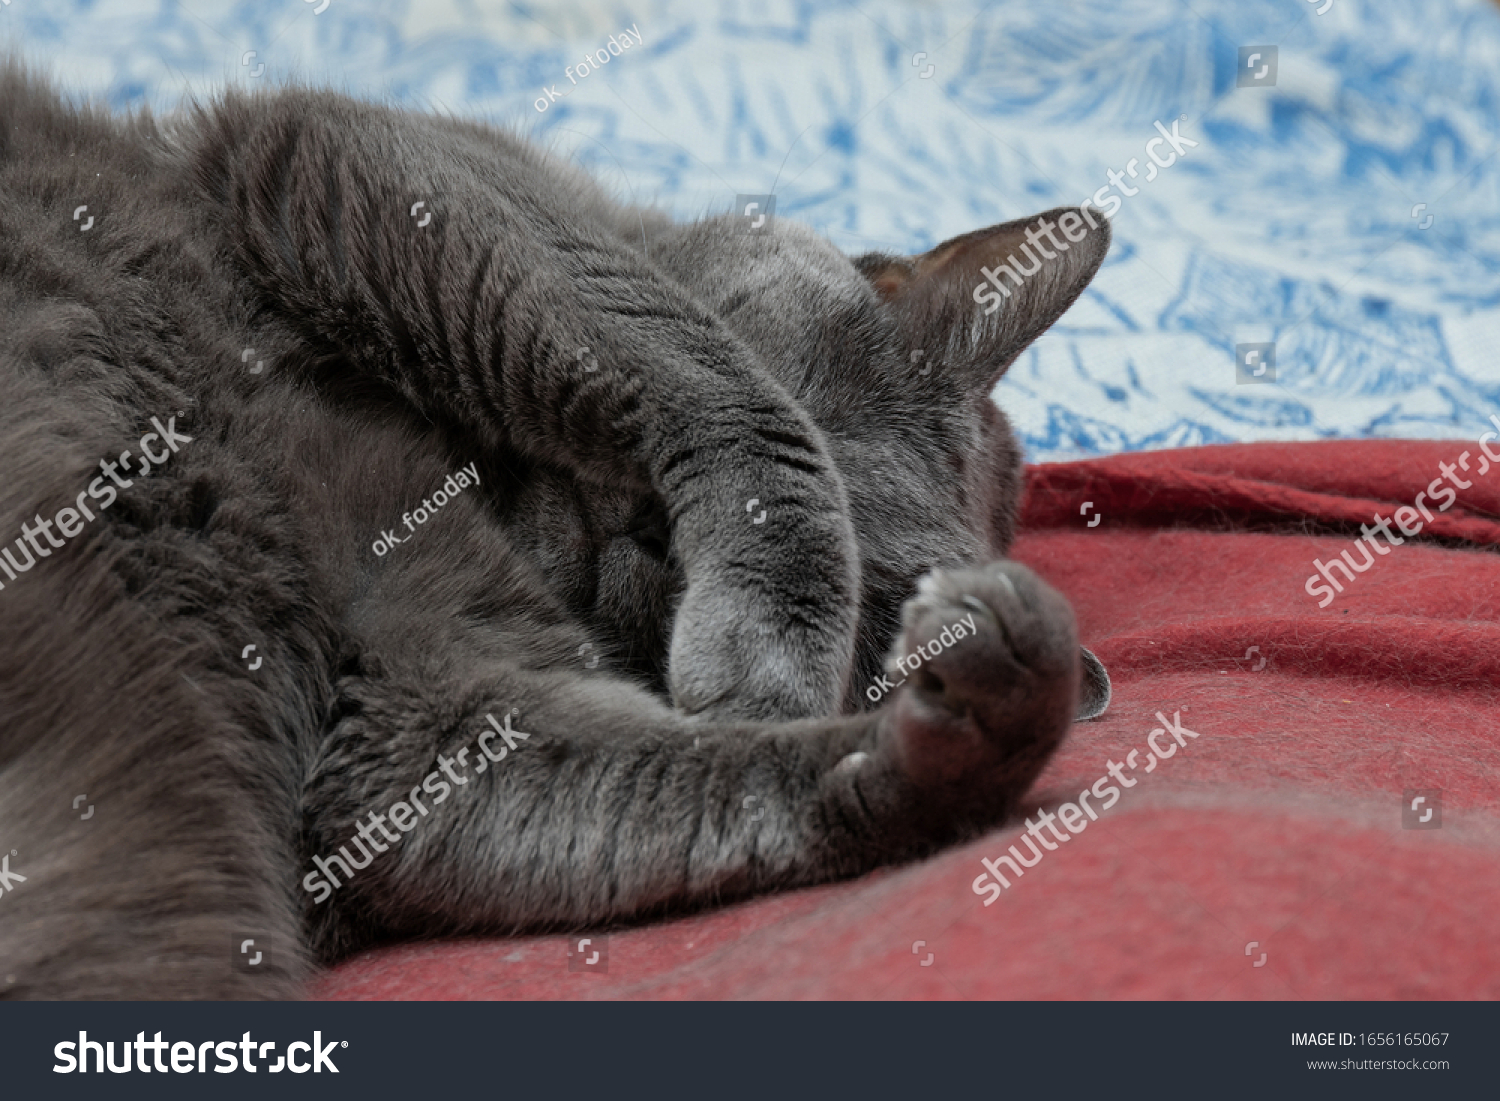 stock-photo-gray-cat-sleeps-sleeps-cover